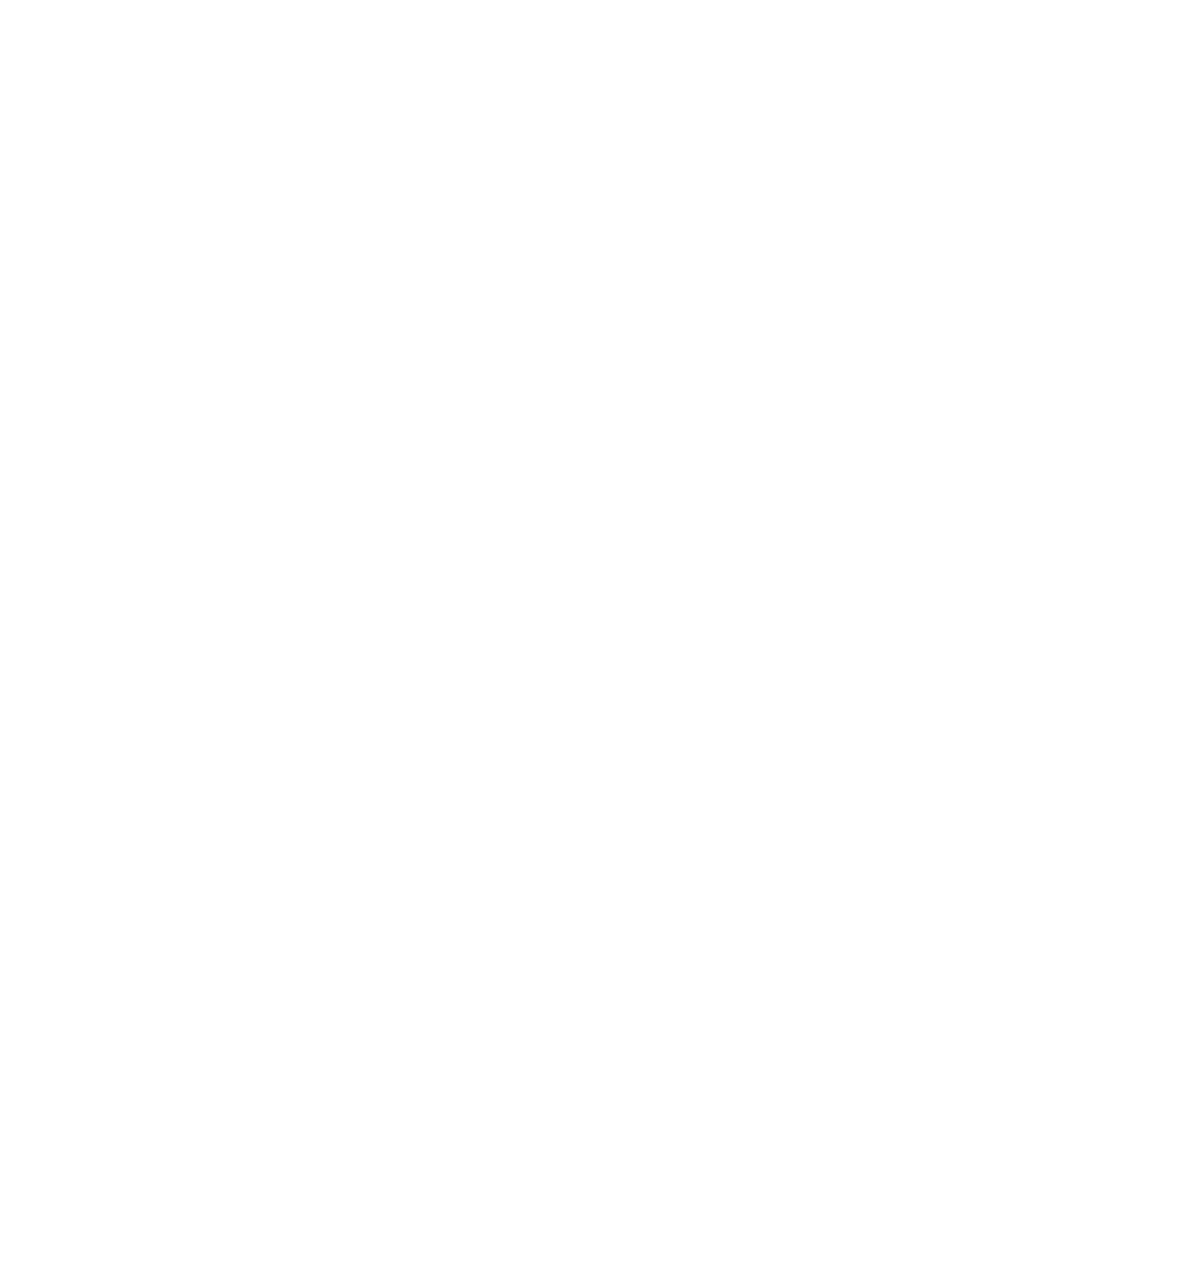 This Christmas Change a Life!